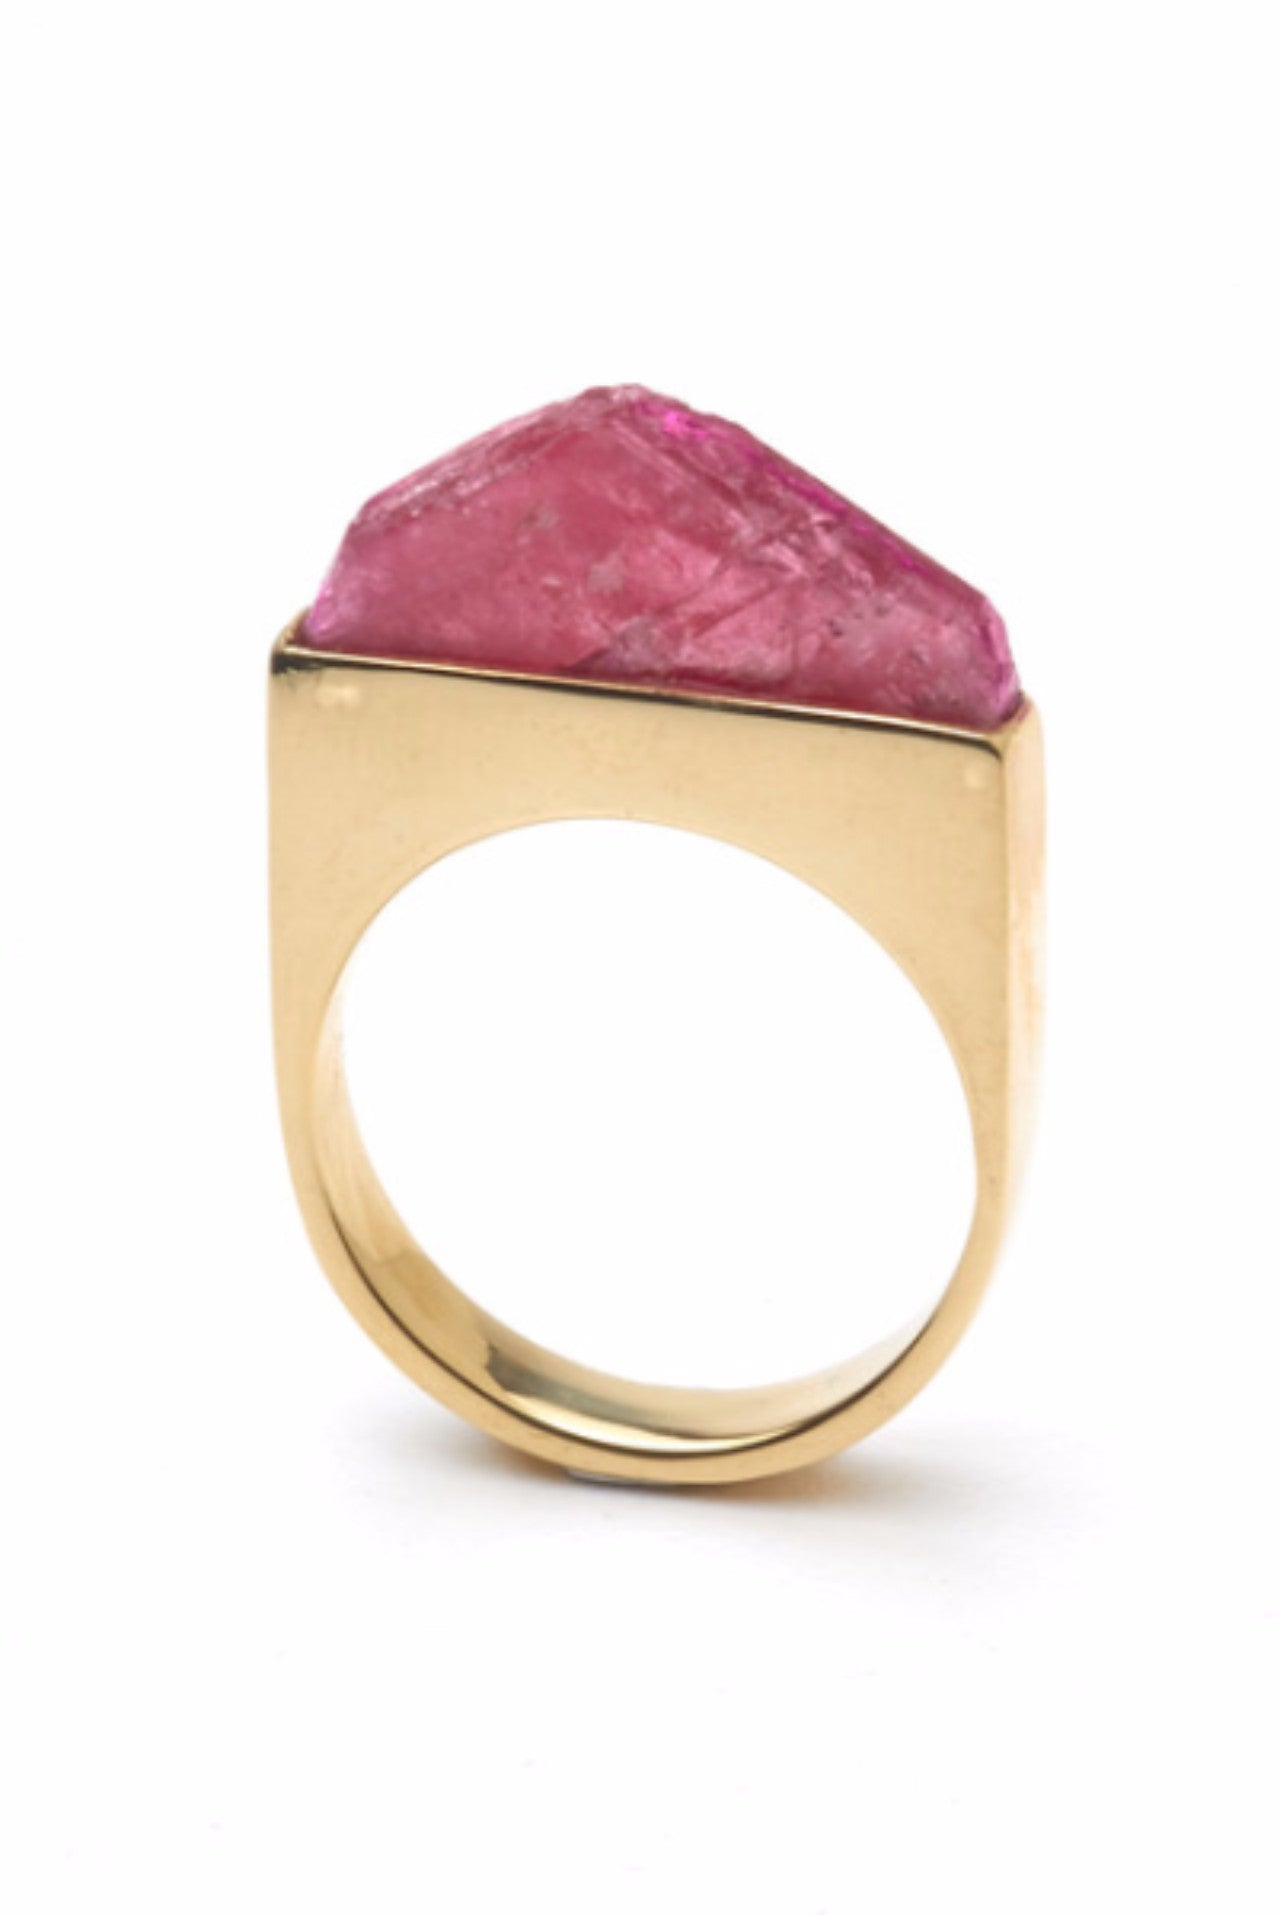 THE SUMMIT Ring in Gold with Rhodinite